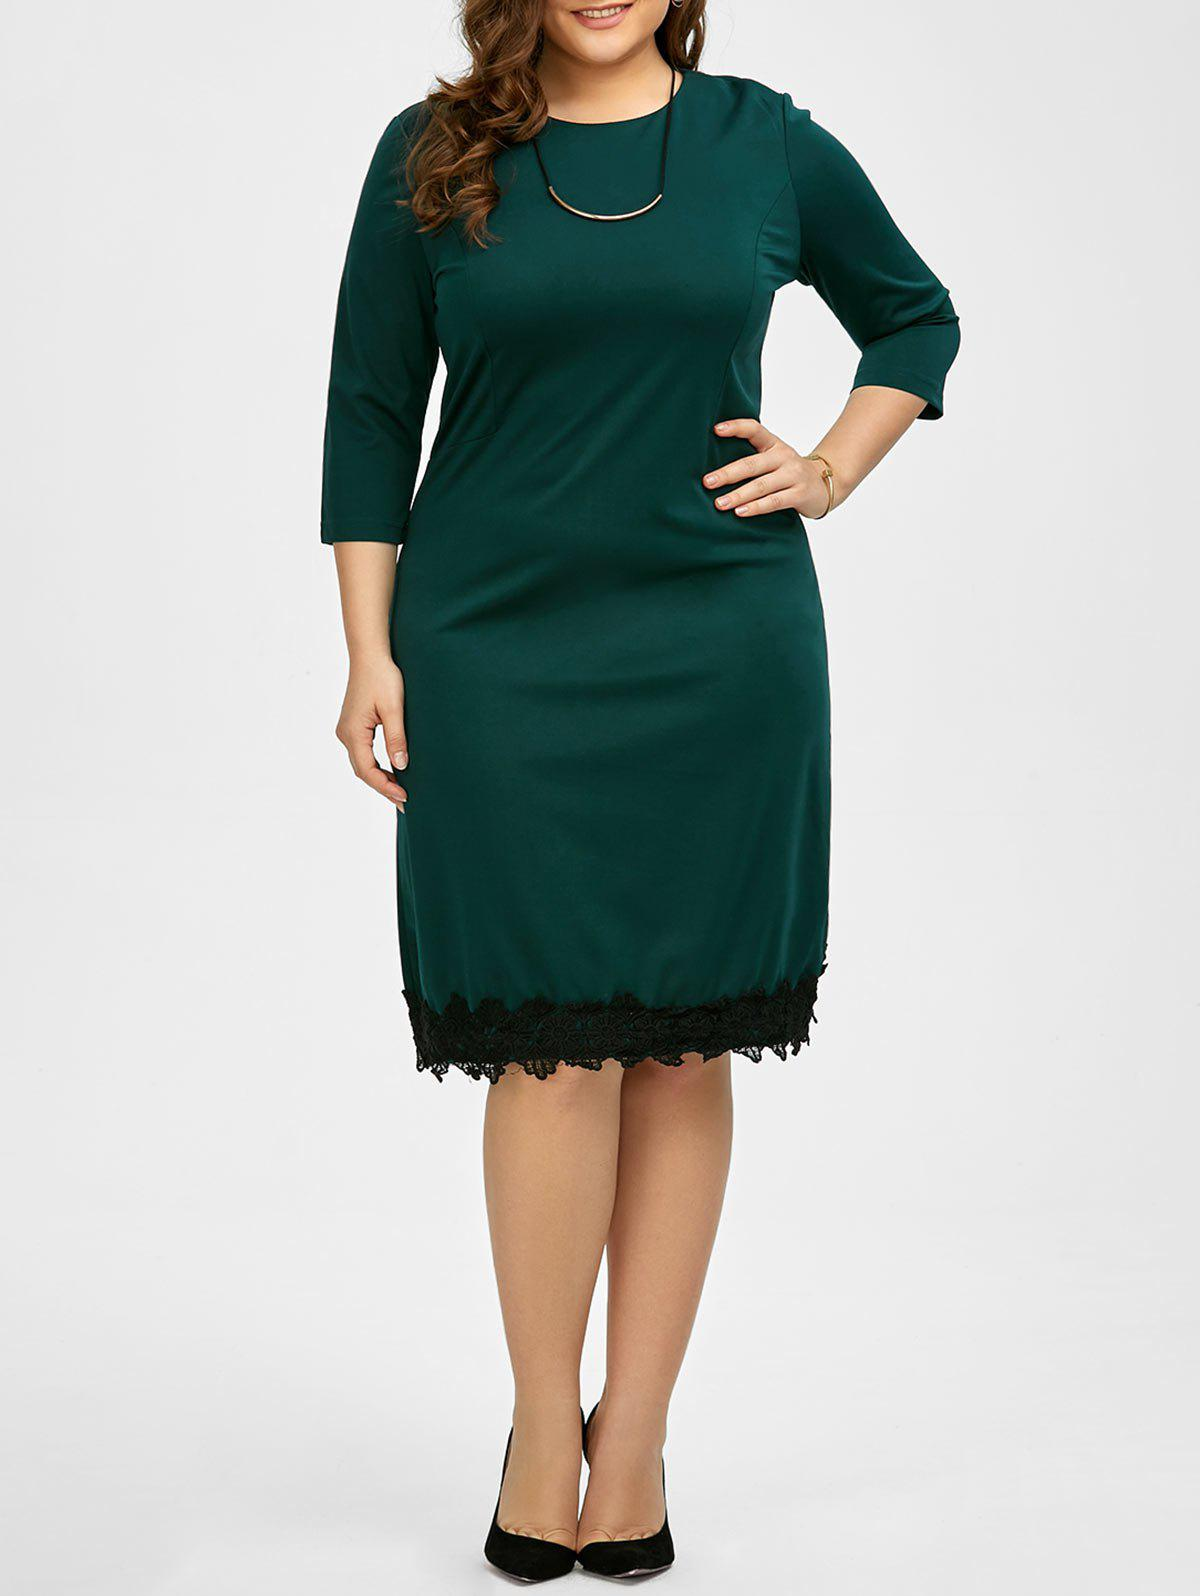 Plus Size Lace Trim Knee Length Work Dress - BLACKISH GREEN 2XL